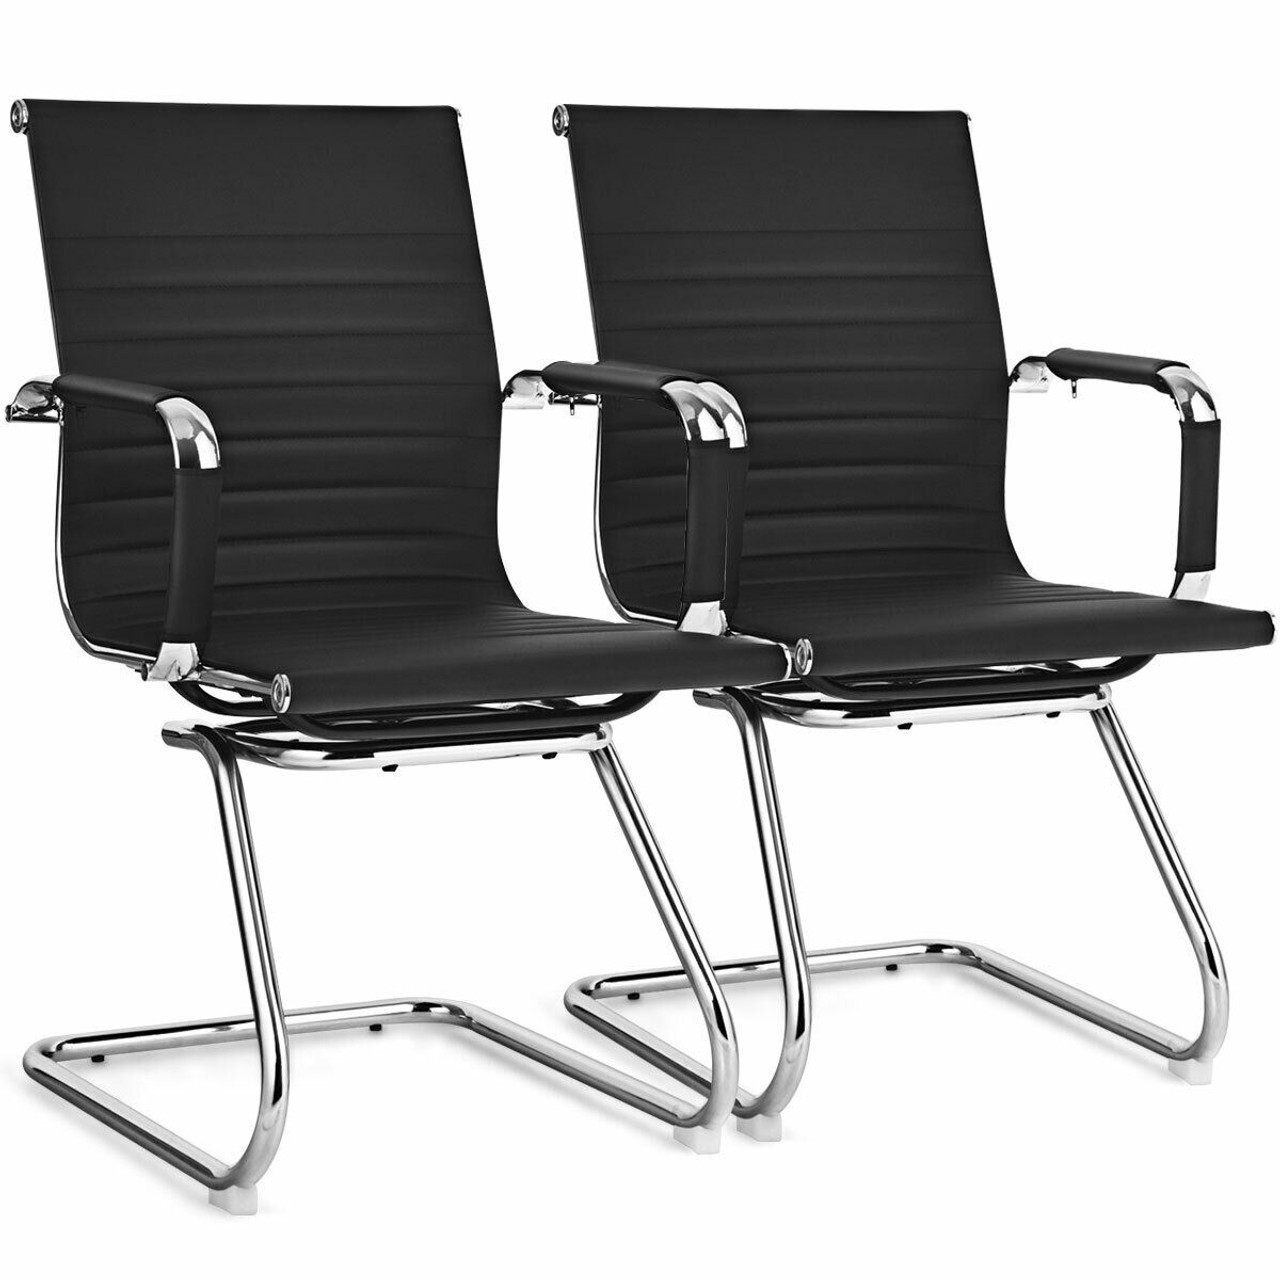 Cw Hw65402bk 2 Set Of 2 Office Guest Chairs Waiting Room Chairs Black